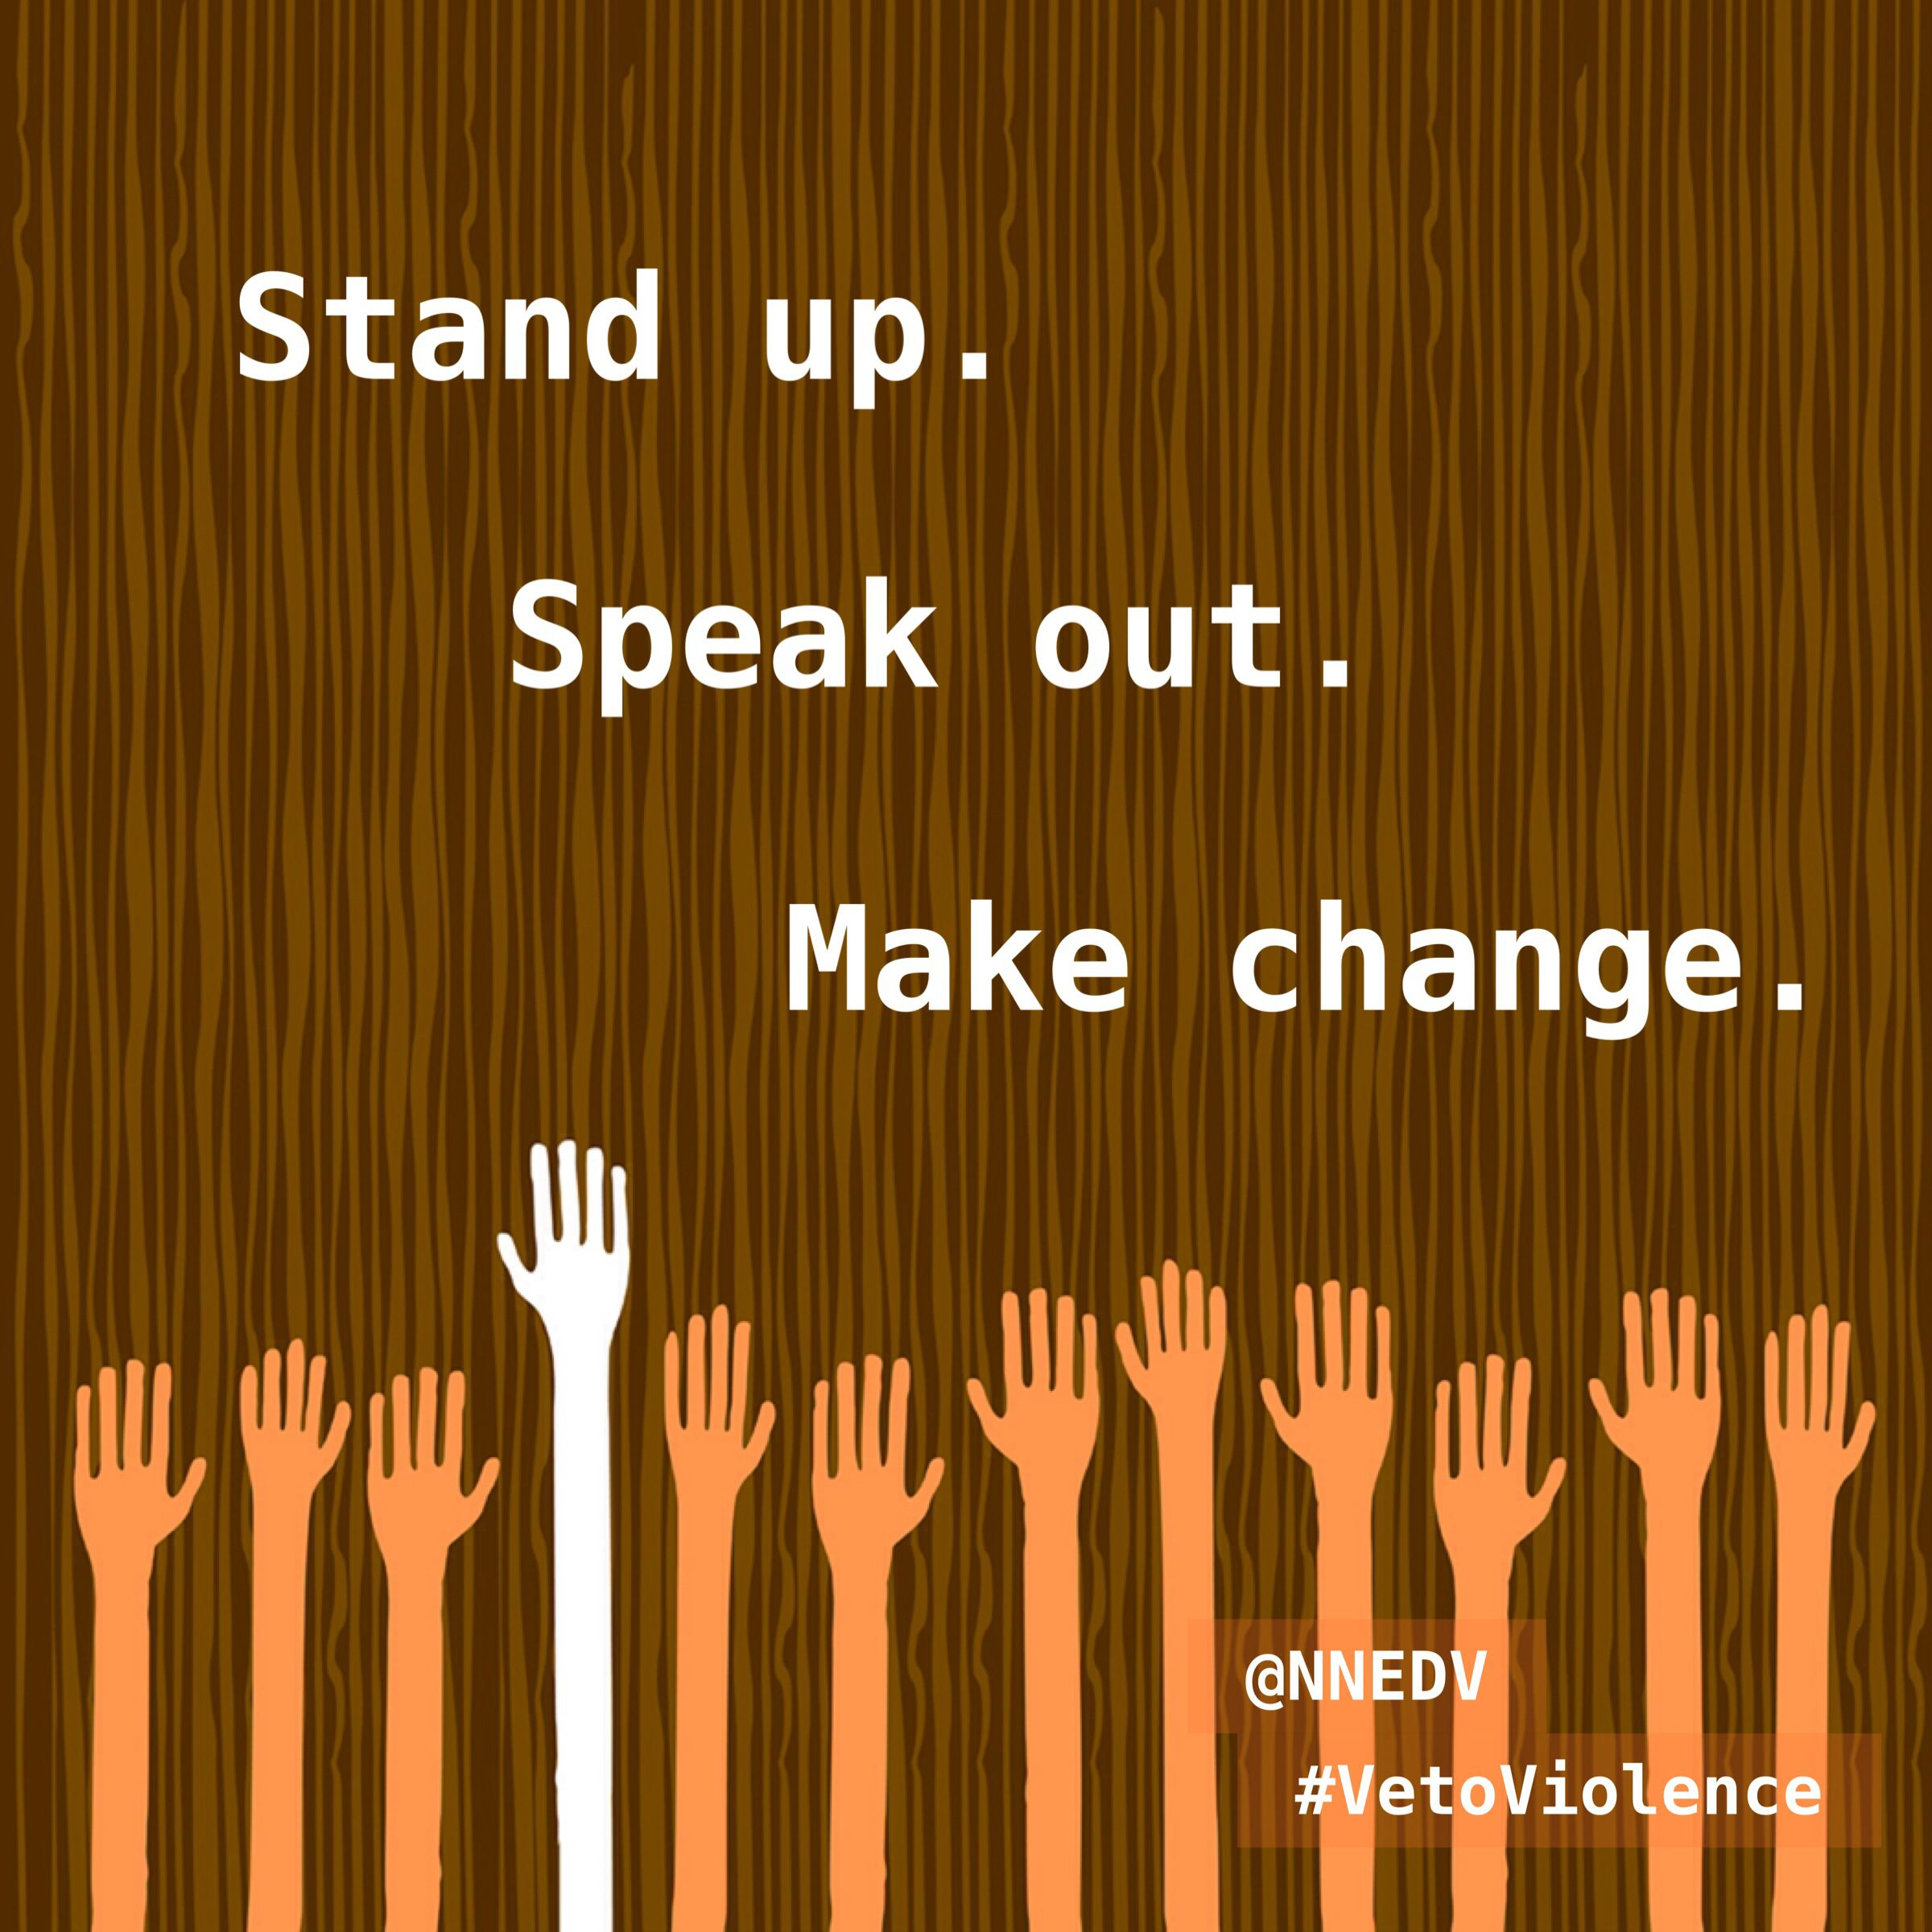 Stand Up. Speak Out. Make Change. #VetoViolence Join The 1